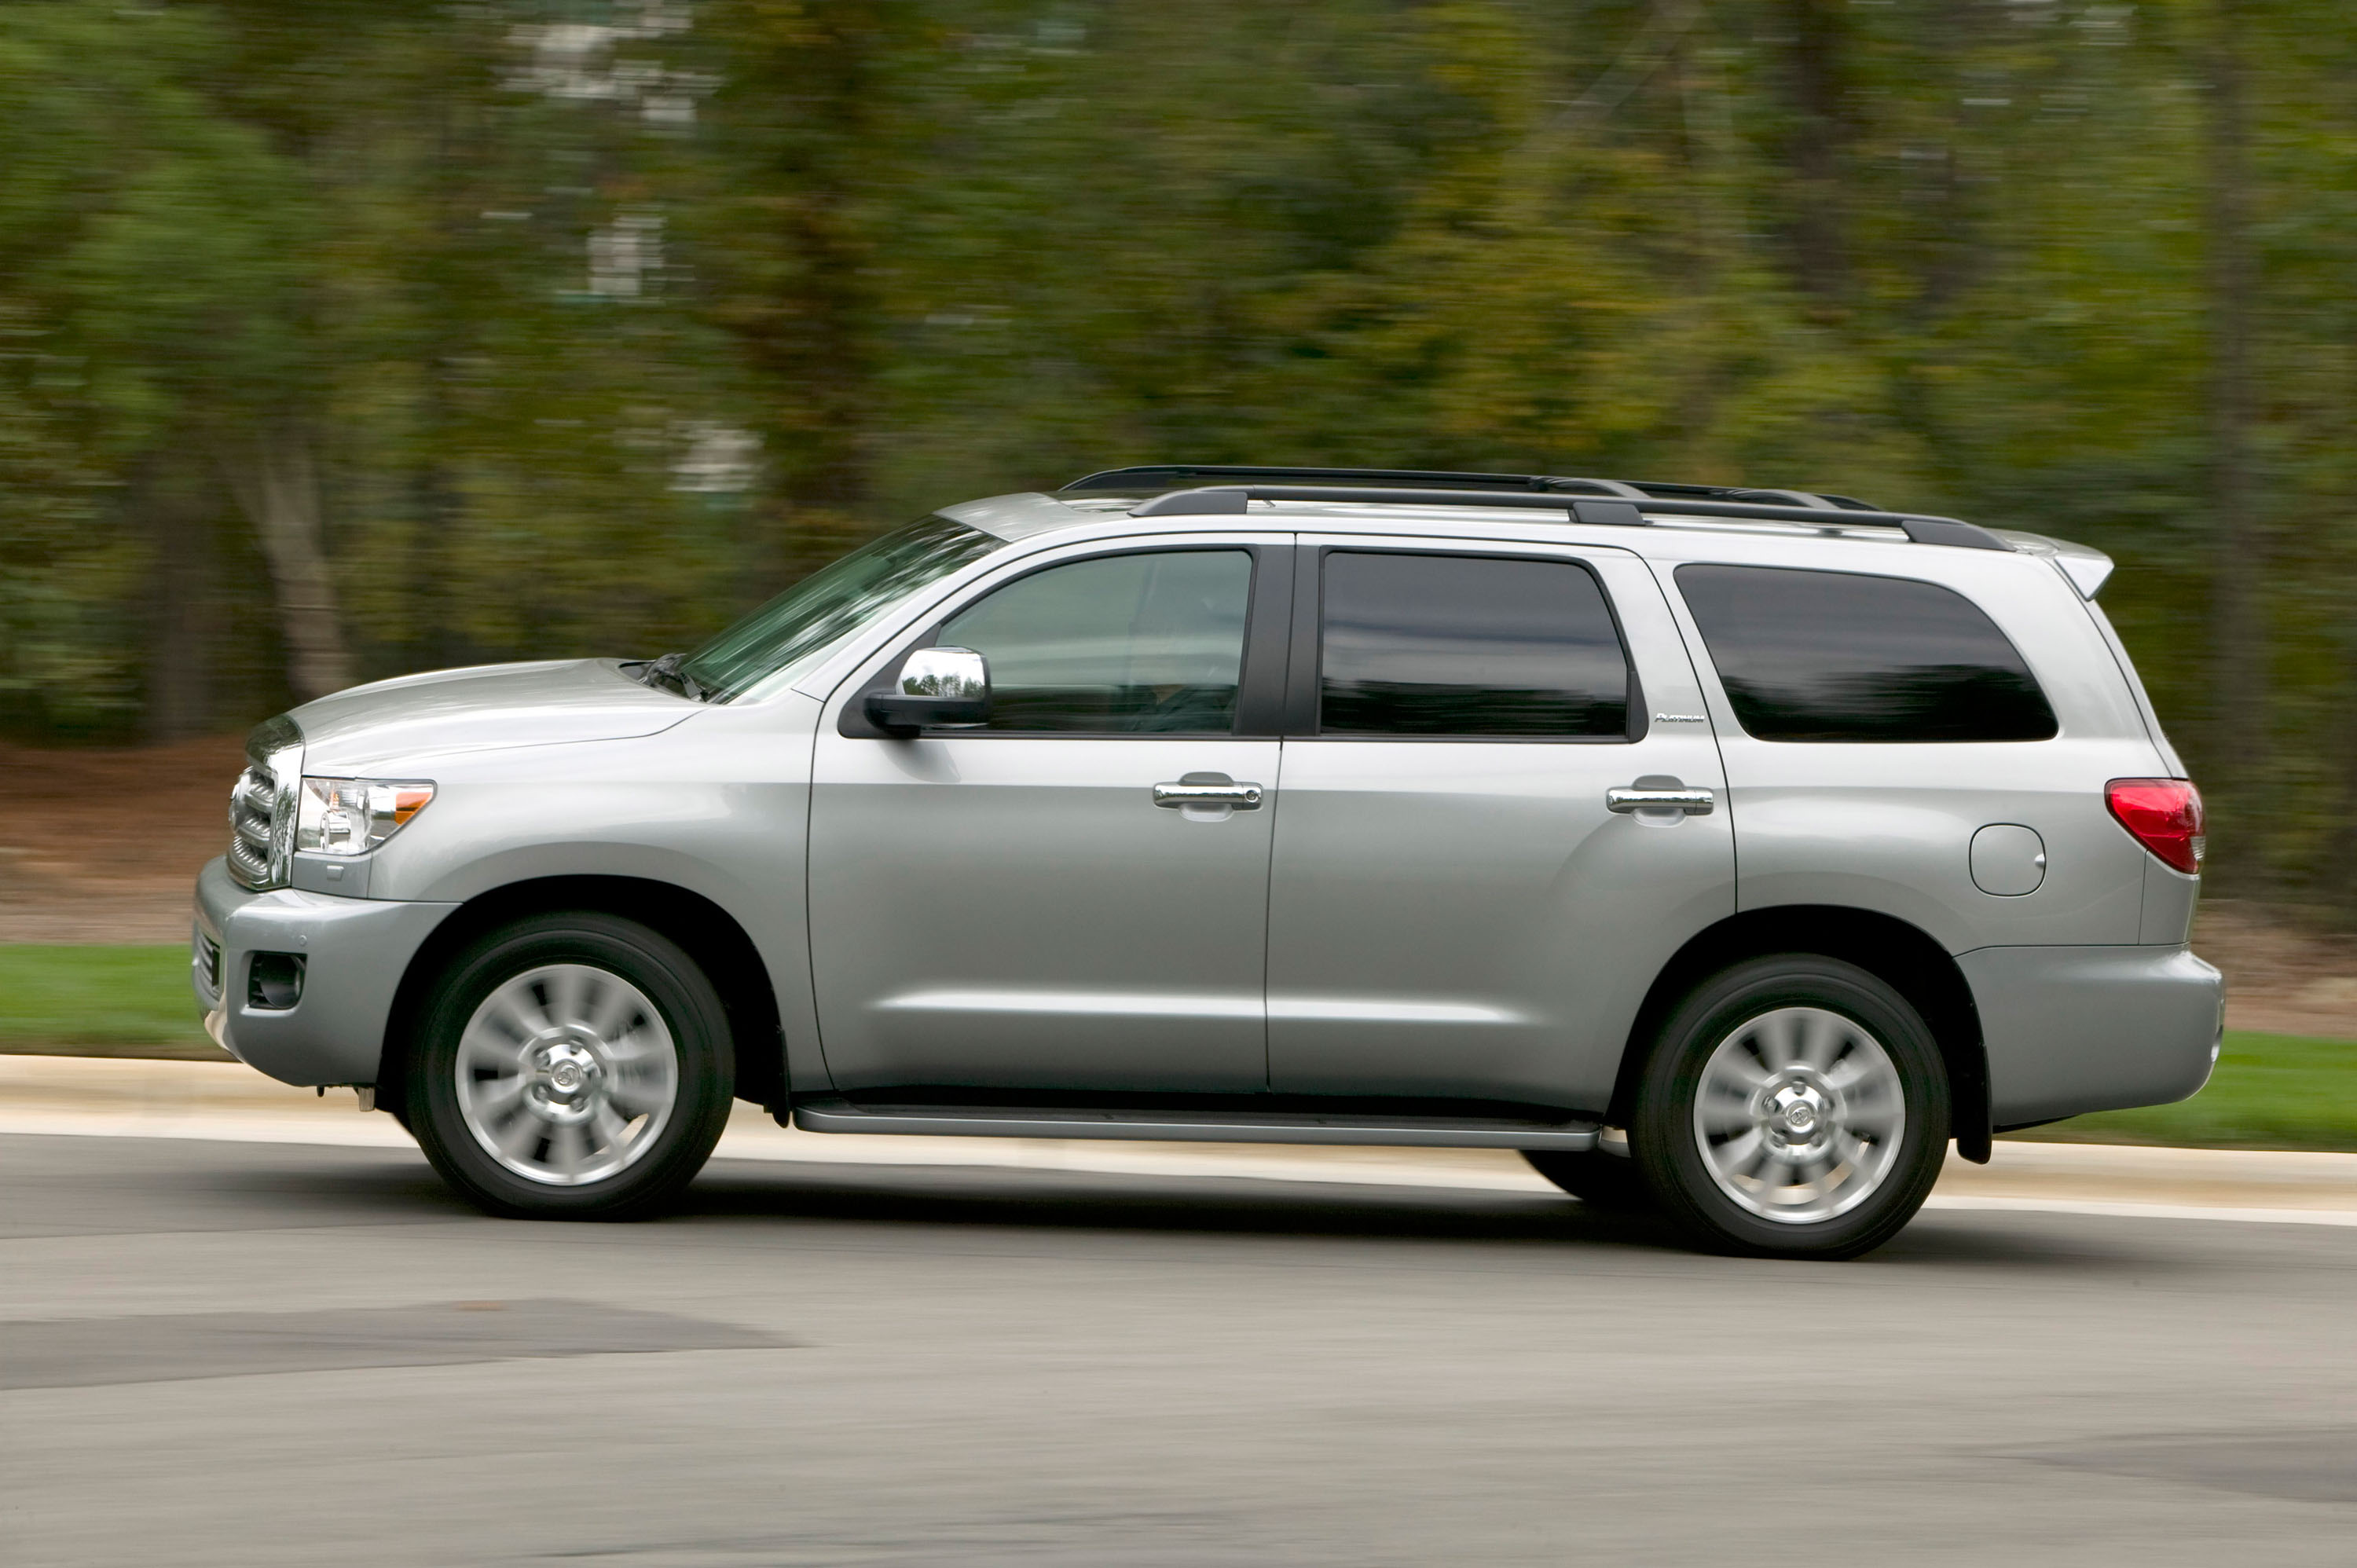 2010 Sequoia Lifted 2001 Toyota Announces Prices For Tundra Pickup And Sport 3000x1996